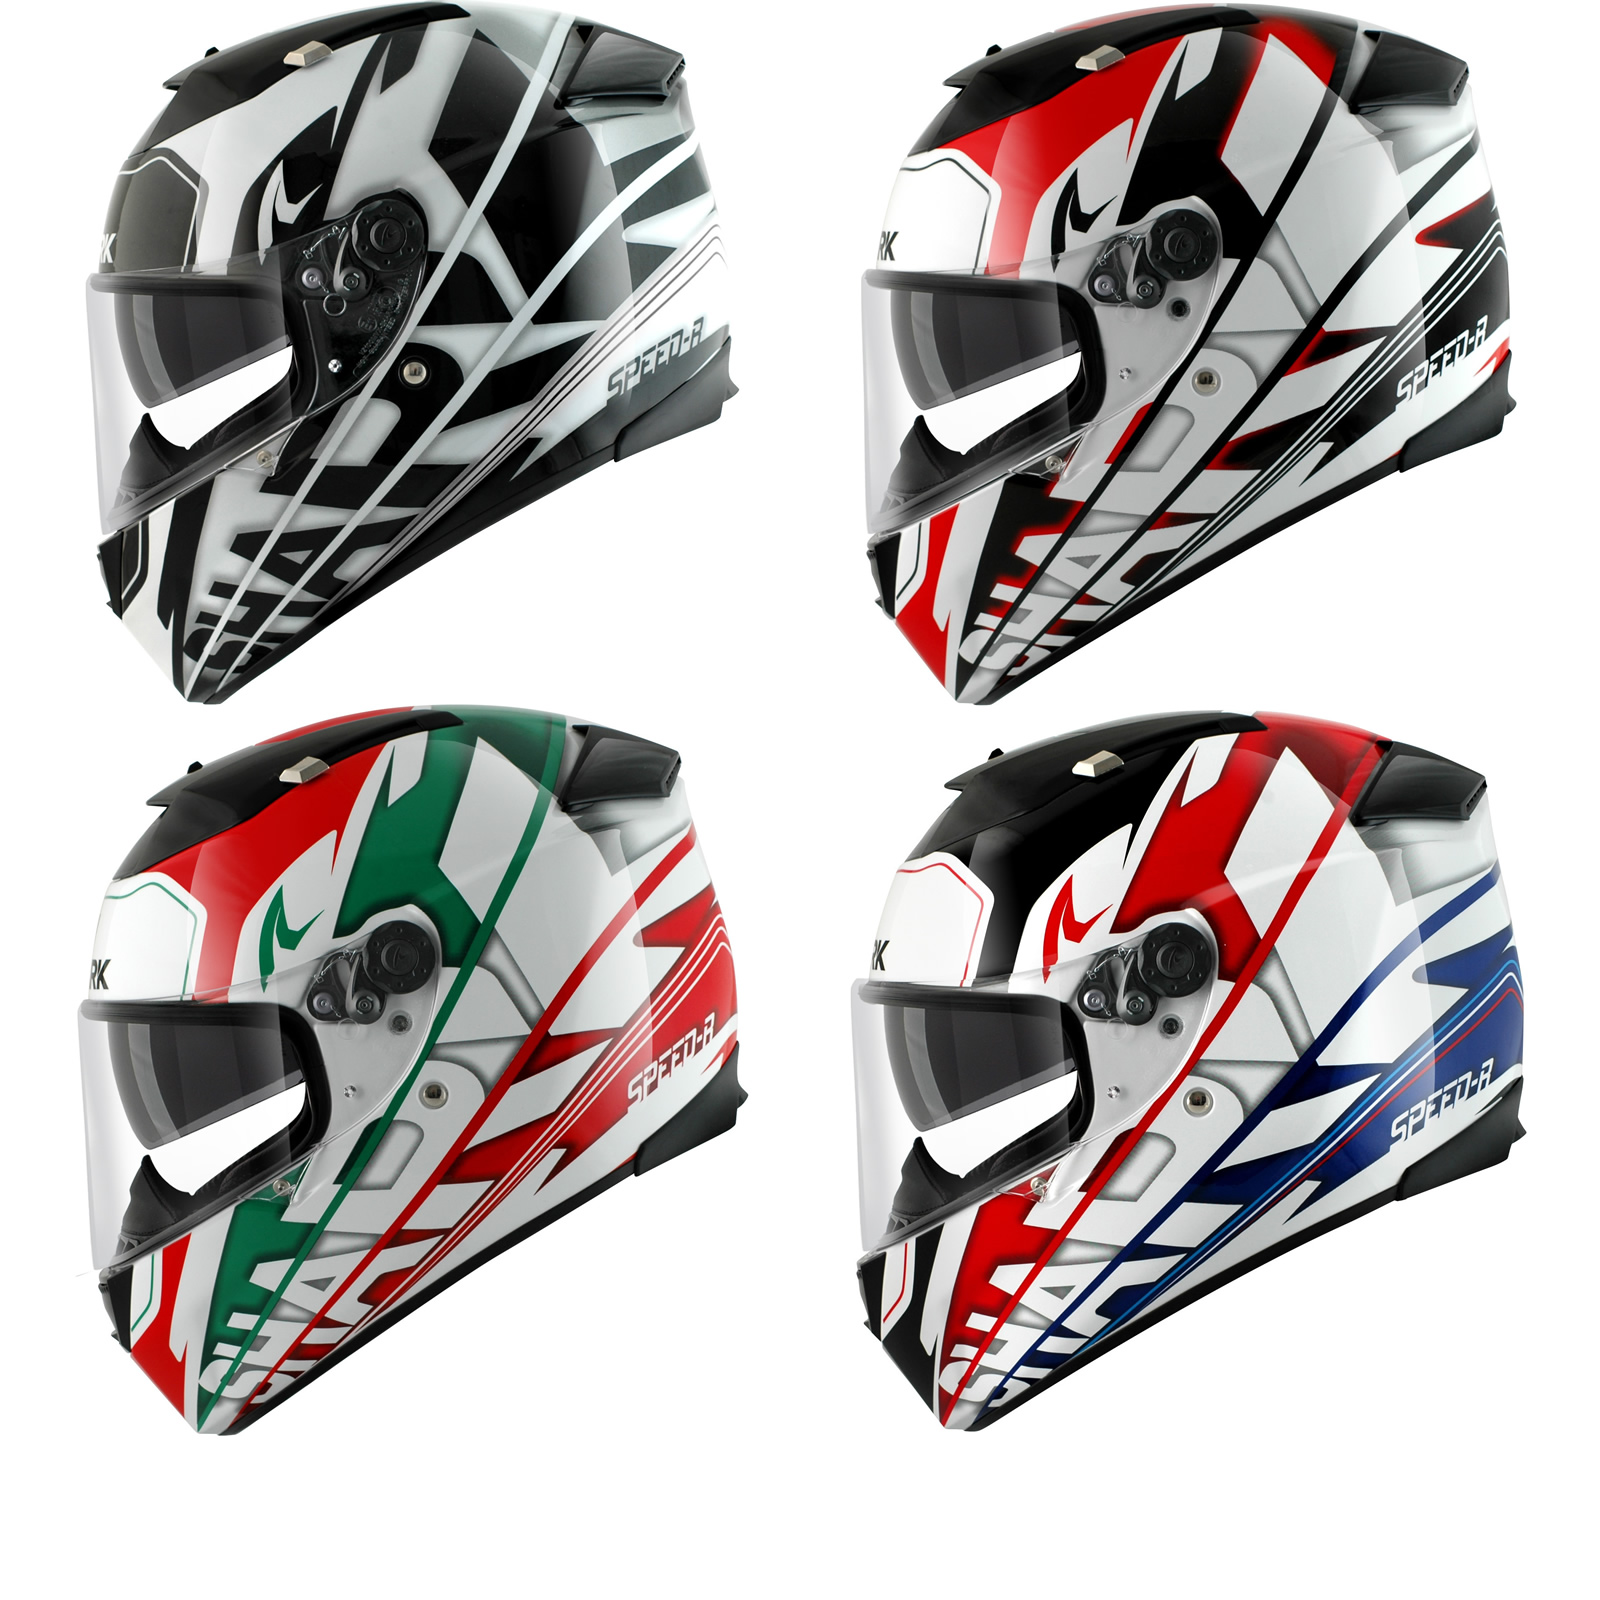 shark speed r carbon craig full face internal sun visor racing motorcycle helmet ebay. Black Bedroom Furniture Sets. Home Design Ideas